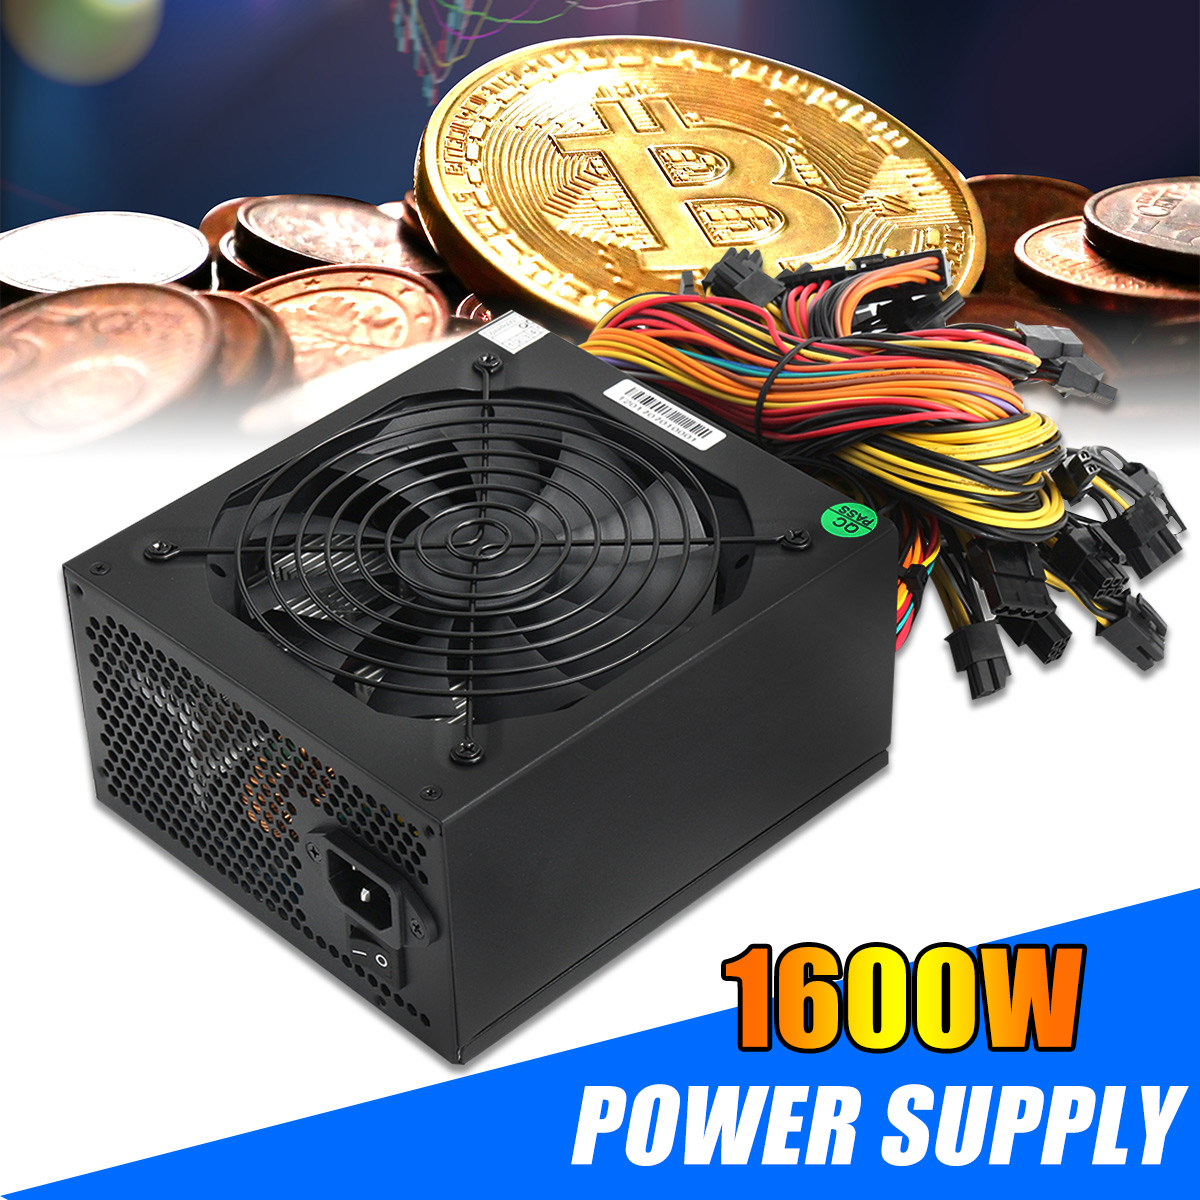 Leory 1600W Modular For Miner Mining Case Power Supply 6 GPU for BTC for Eth Rig Ethereum Coin Power Supplies Gold 90 Efficiency 1600w bitcoin atx modular power for eth rig ethereum coin miner mining power supports 6 graphics overclocking 1600w power supply